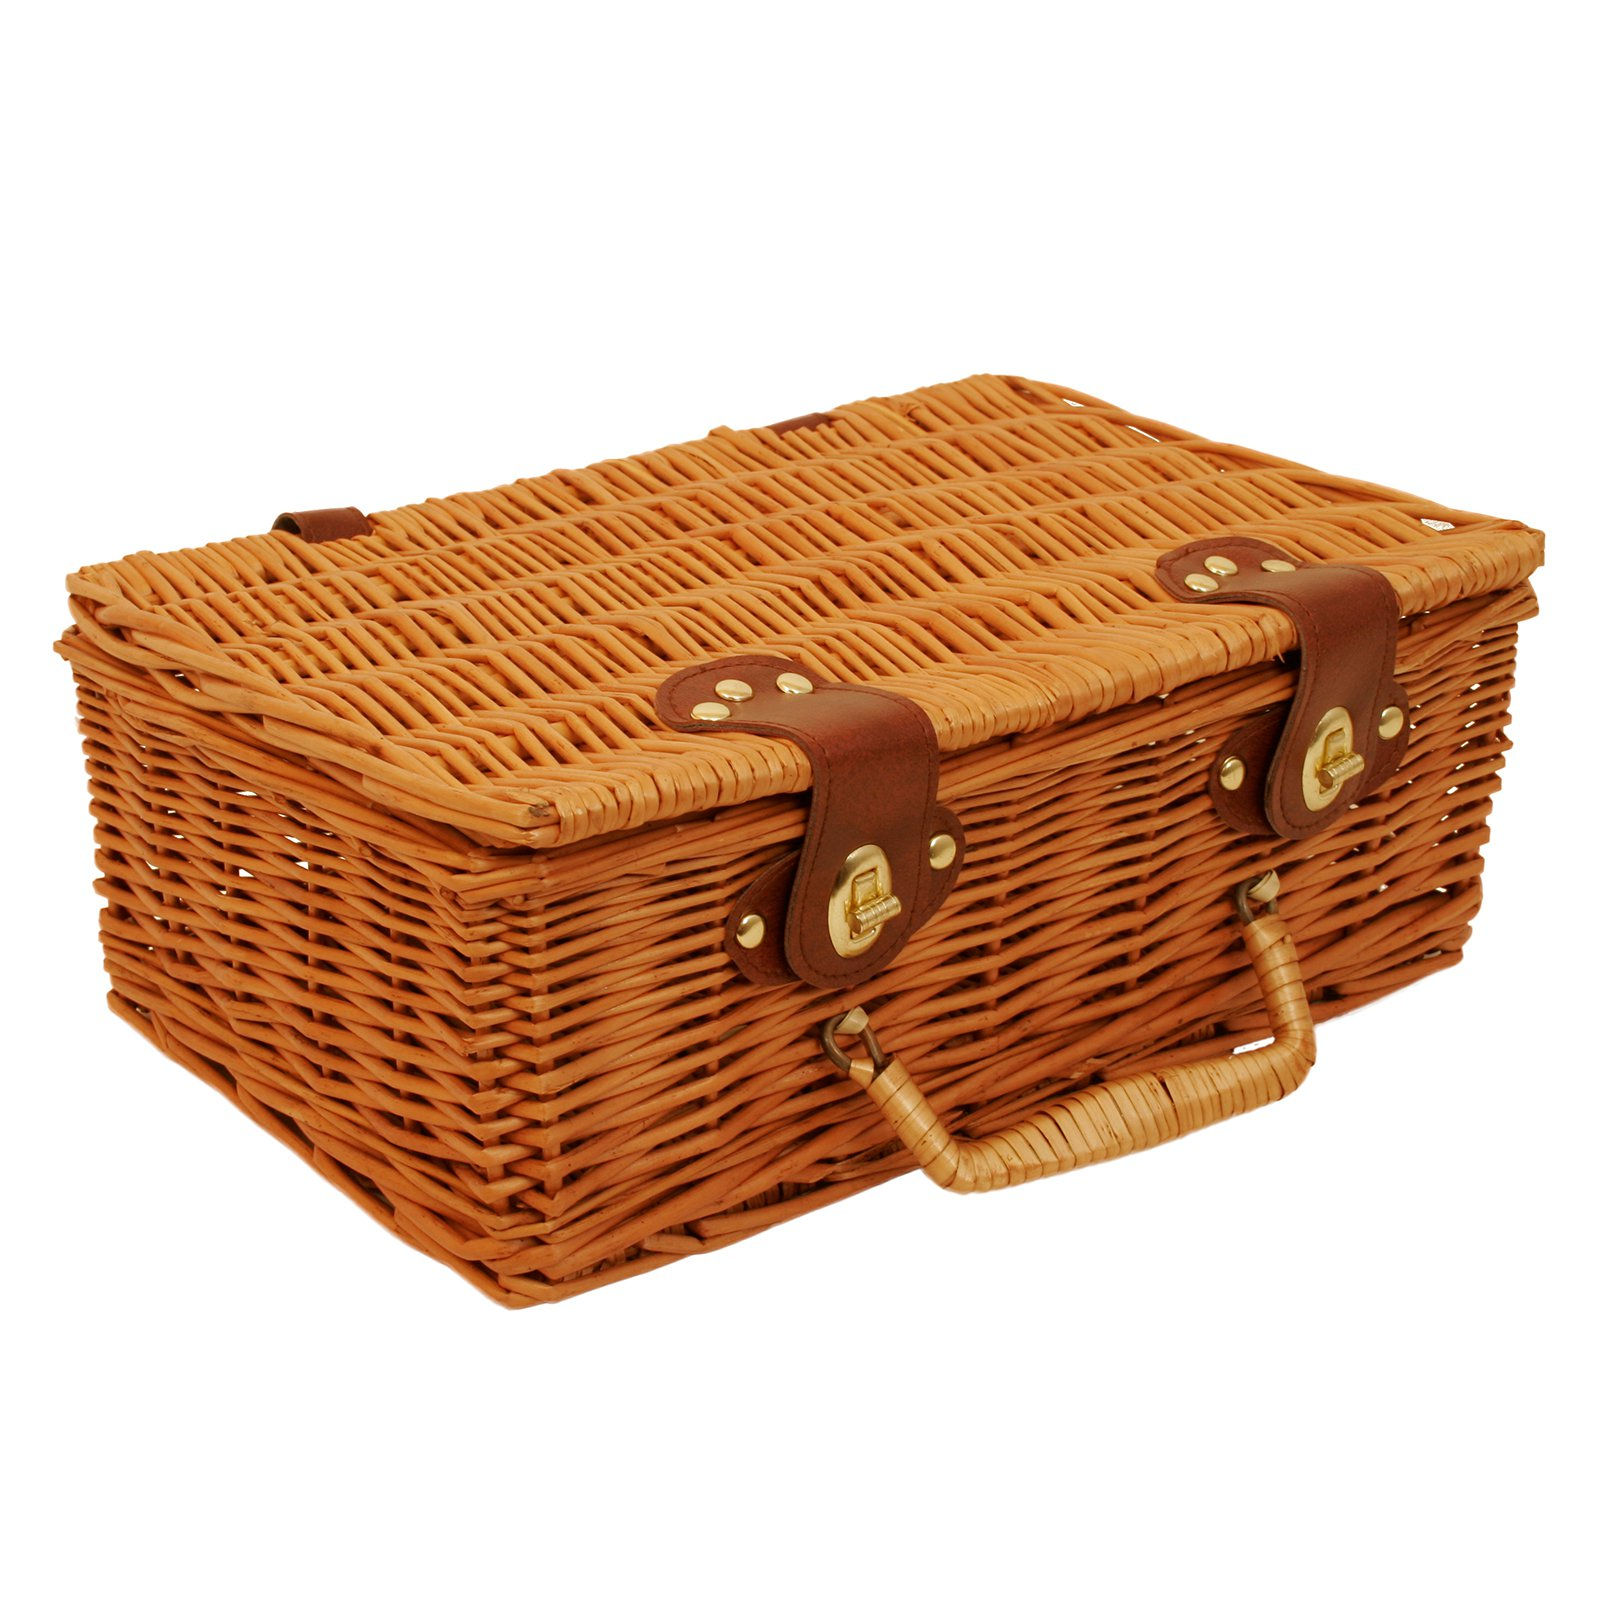 Wald Import Willow Picnic Basket - Stained Brown